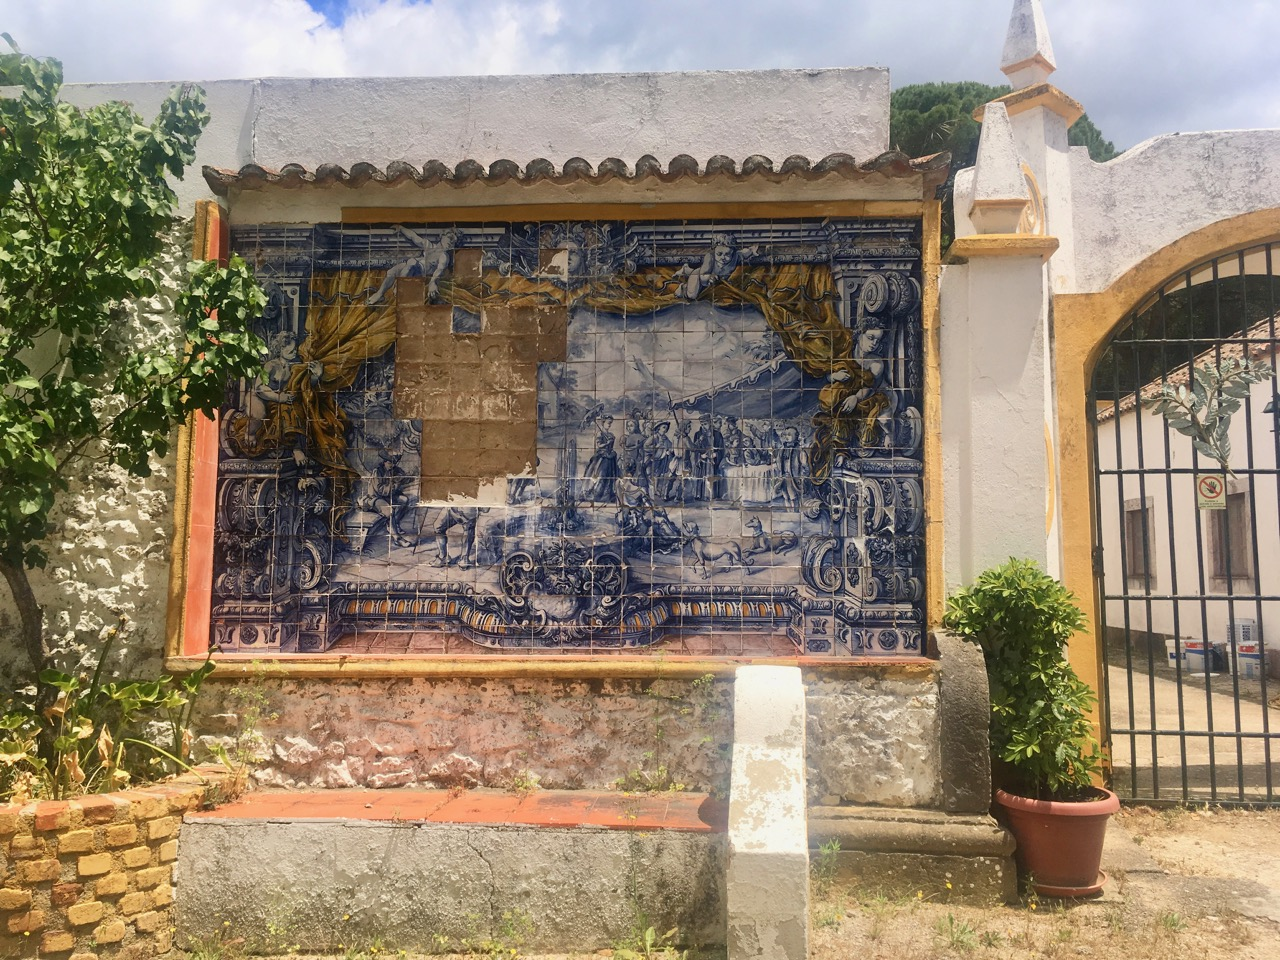 Gates and Azulejo tiles